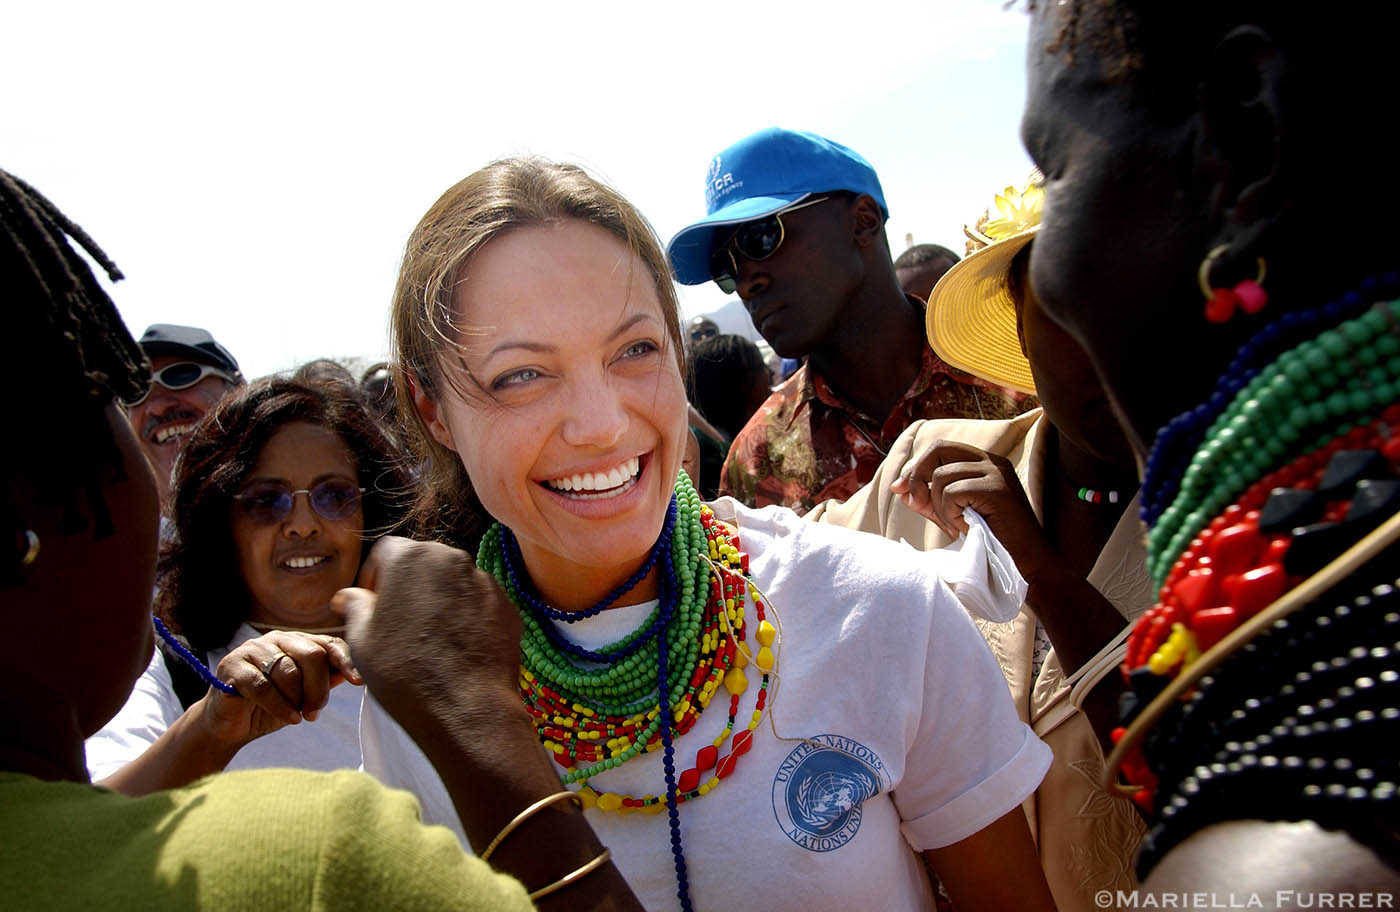 Angelina Jolie, UNHCR Goodwill Ambassador, gets help in putting on beaded necklaces given to her as a gift from a group of Pokot women (Kenyan Tribe) on her arrival at Kakuma refugee camp, Northern Kenya.